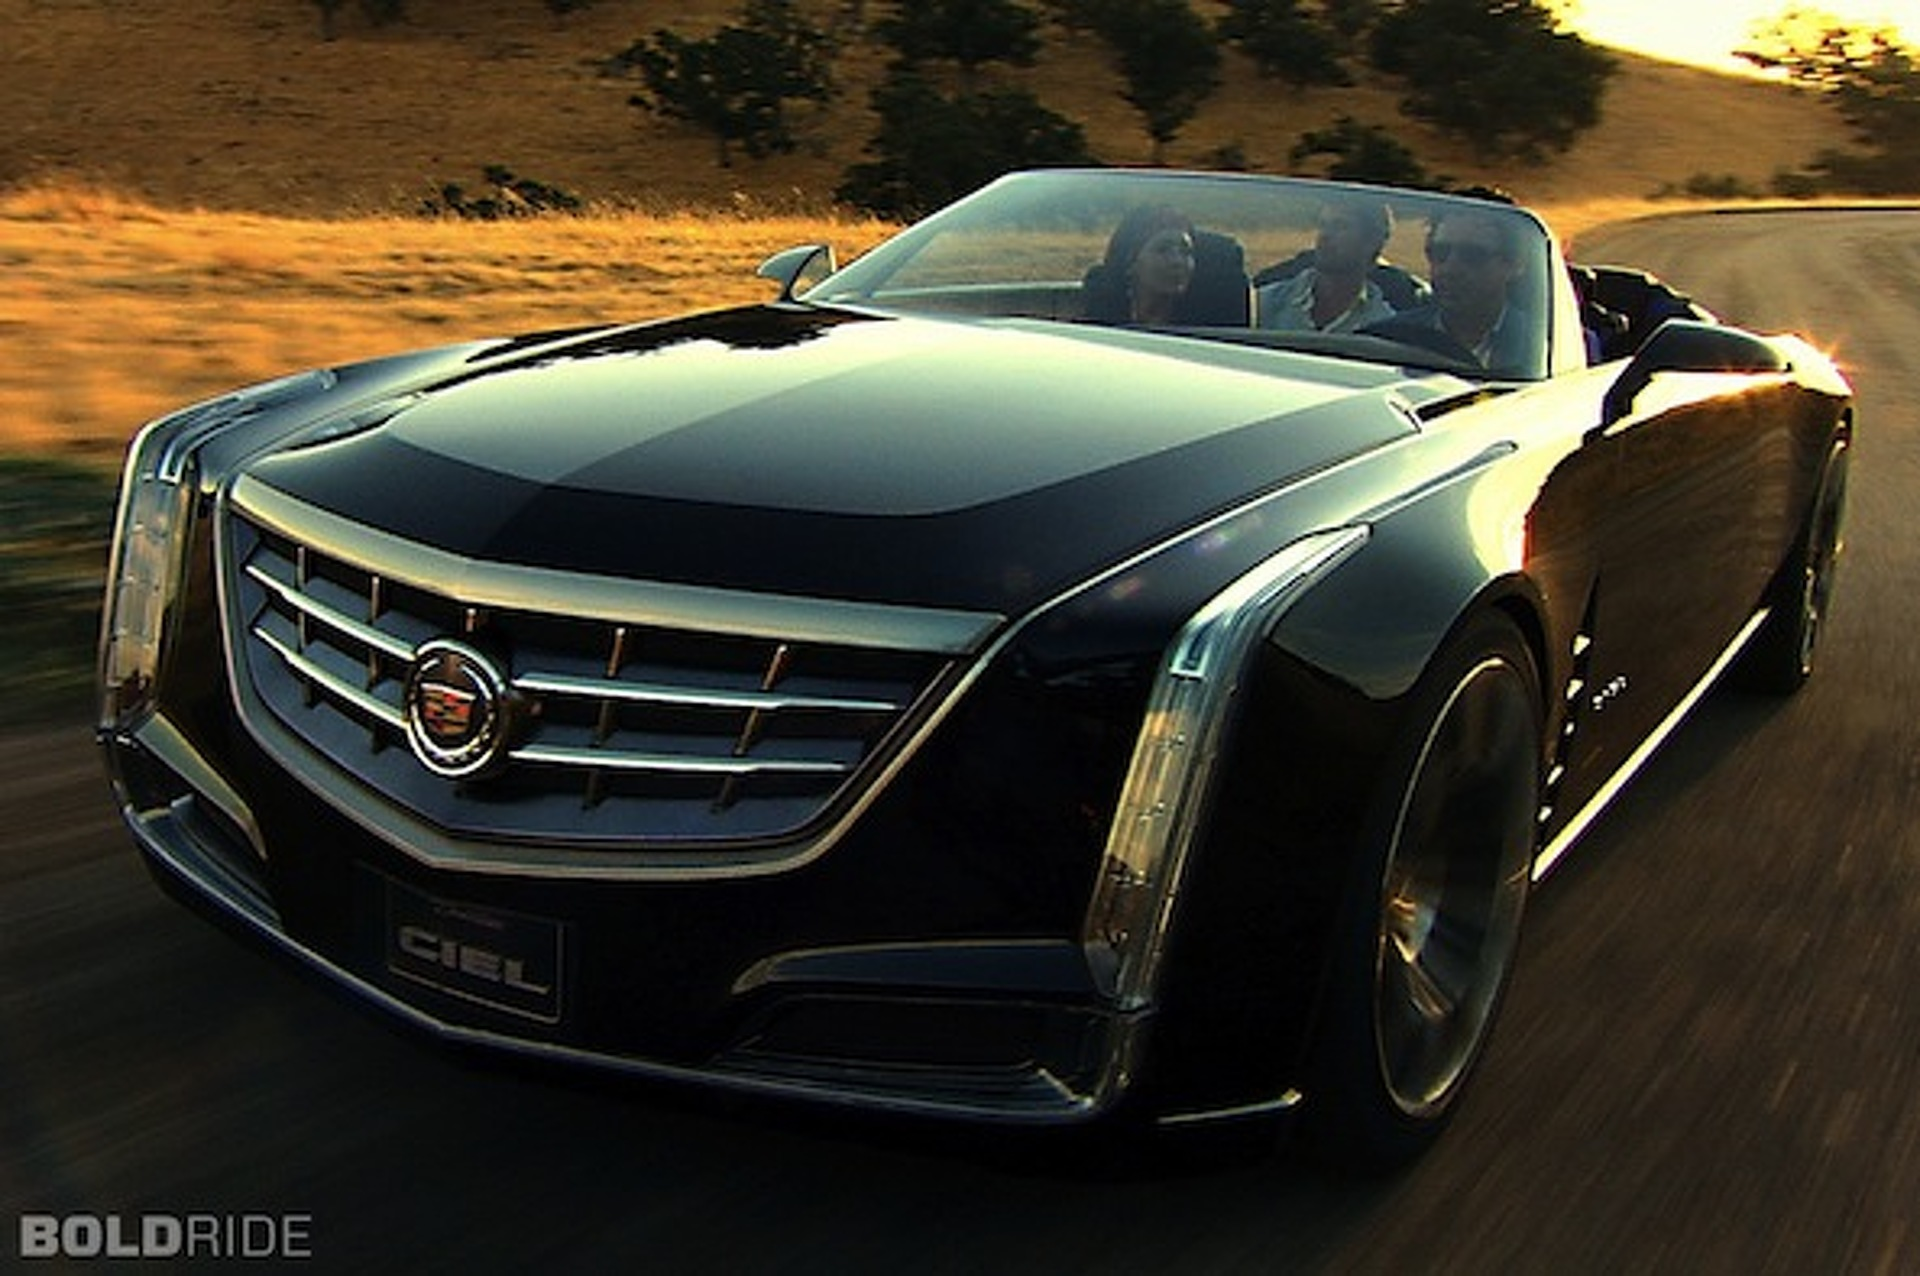 Cadillac Ciel: The Ultimate Cruising Machine